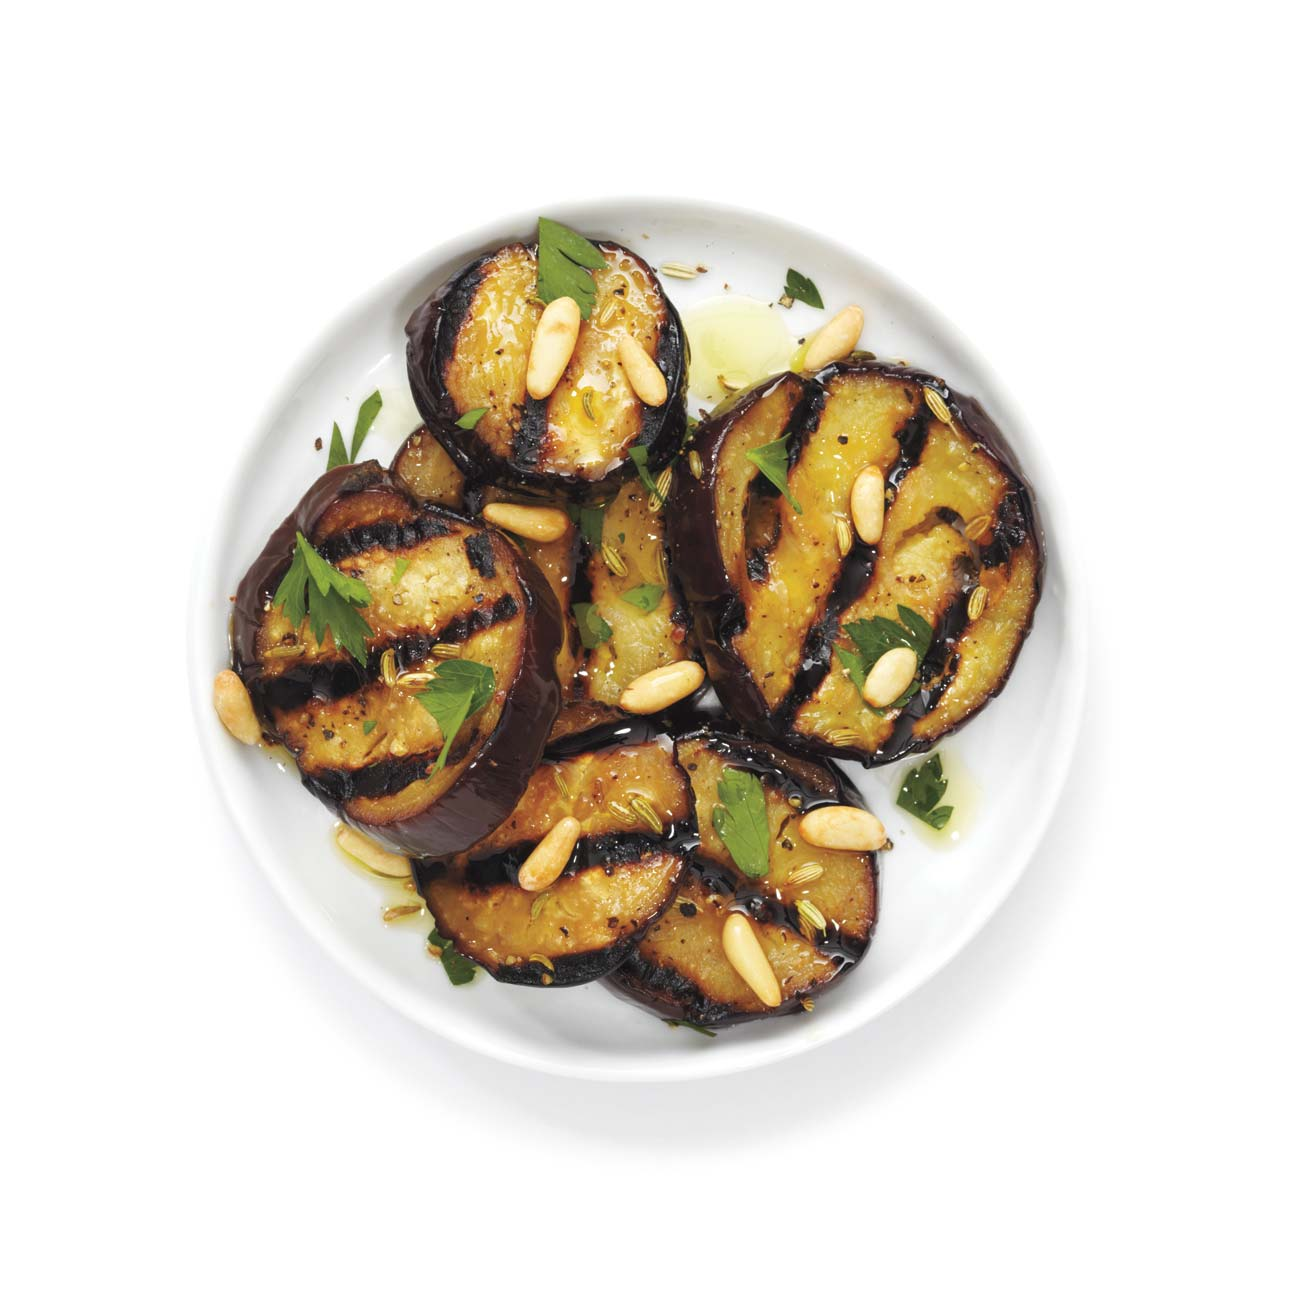 Grilled Eggplant With Parsley and Pine Nuts